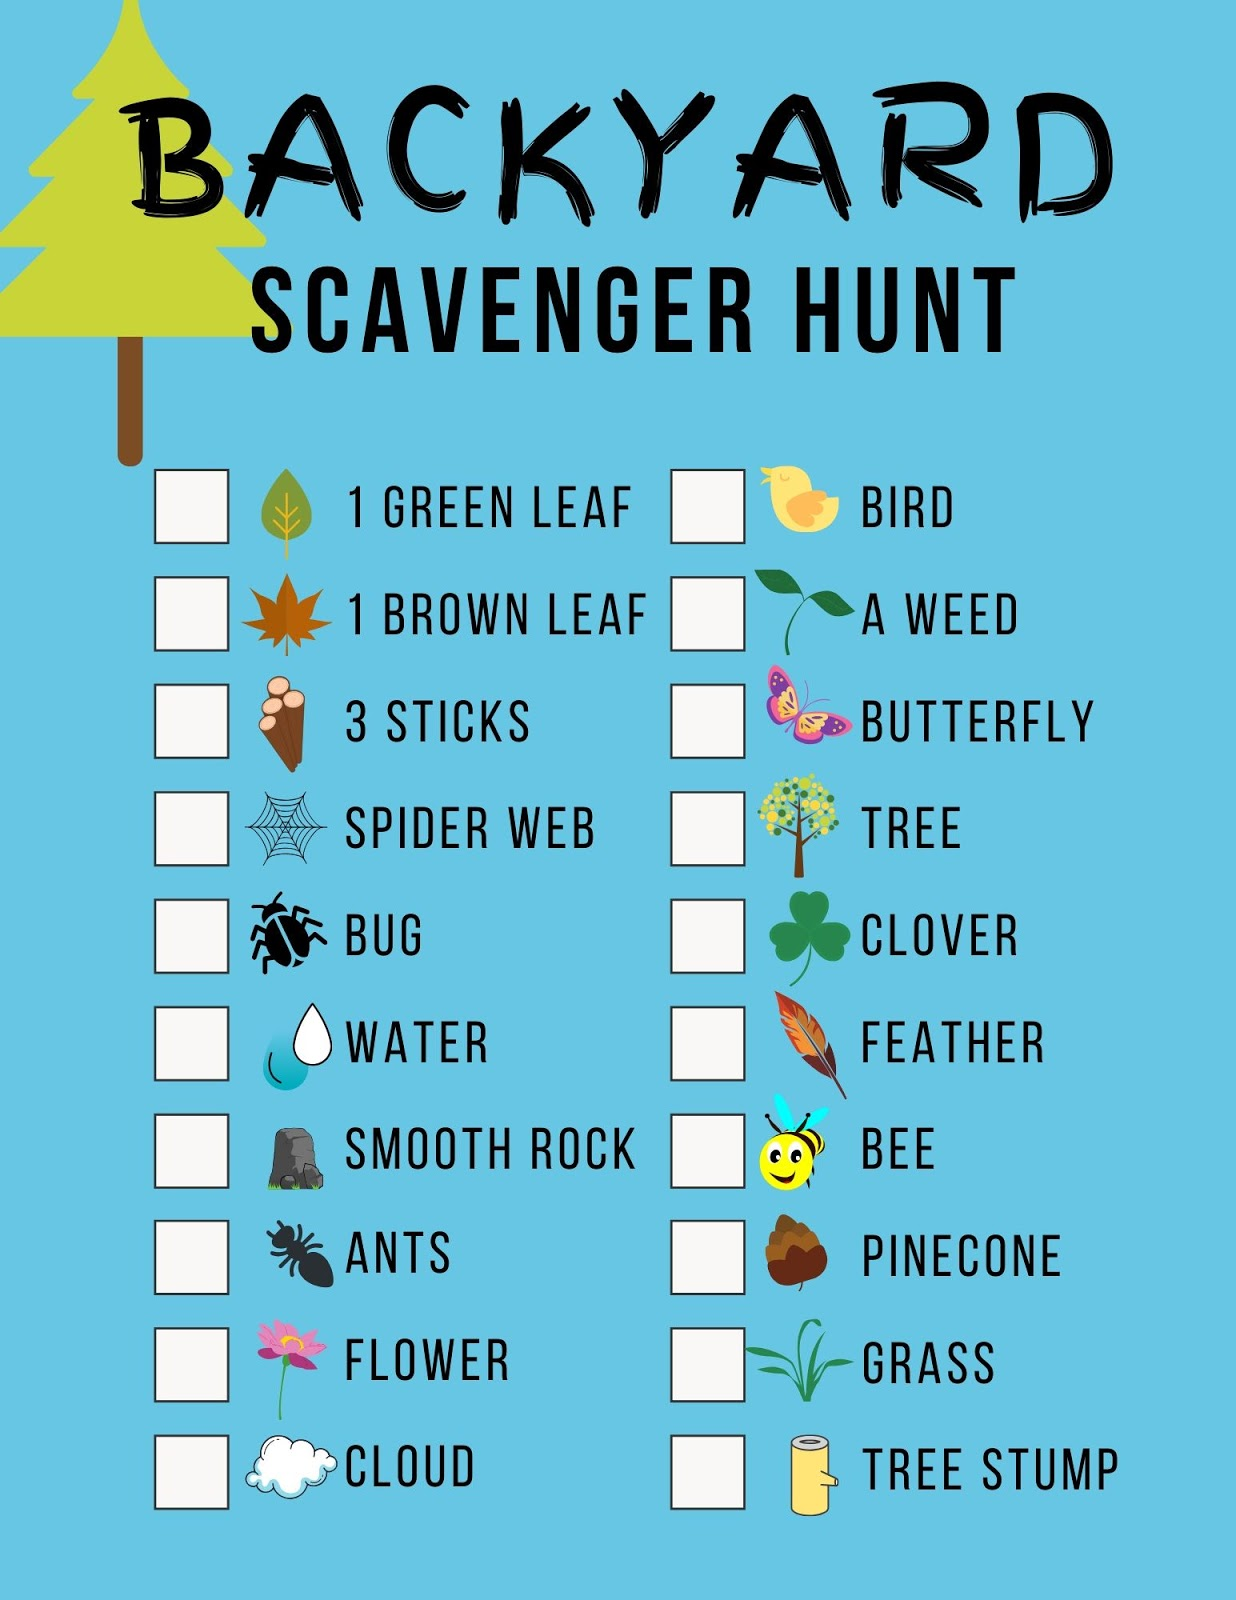 Backyard Scavenger Hunt (with Printable!)   Olive and Tate